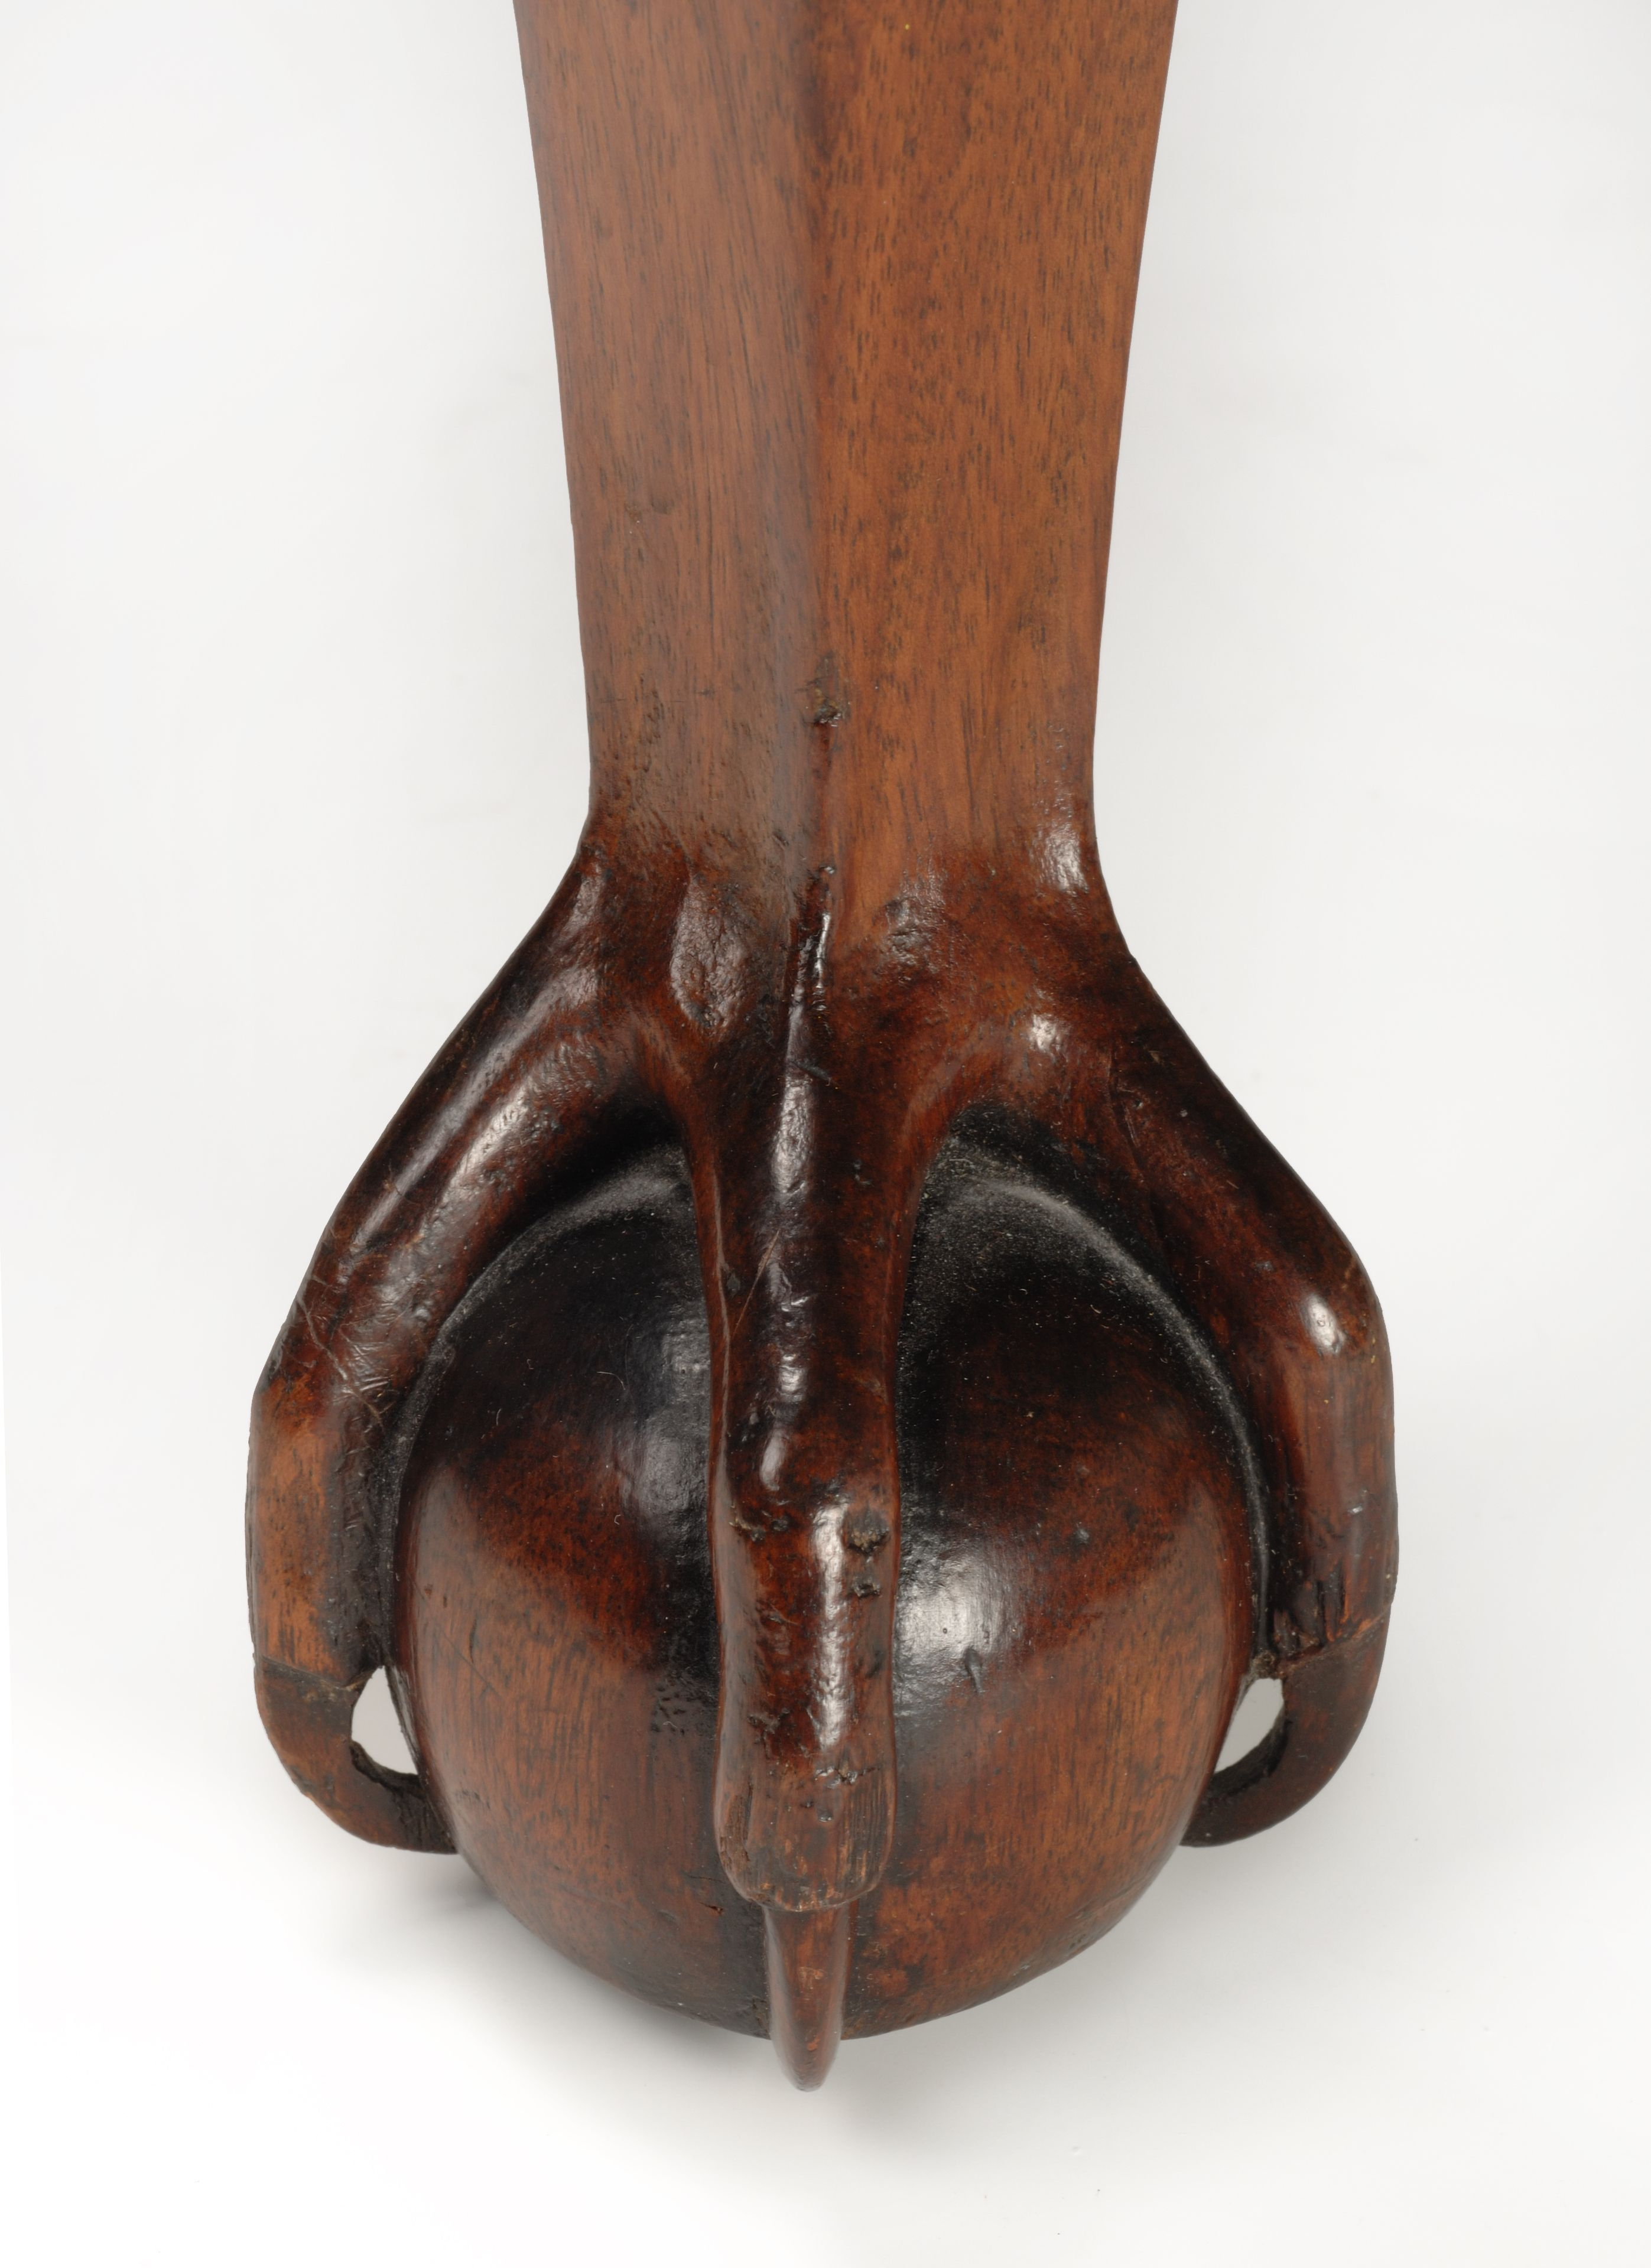 The Ball And Claw Foot Is A Distinctive Feature Of Newport throughout Claw Feet For Furniture